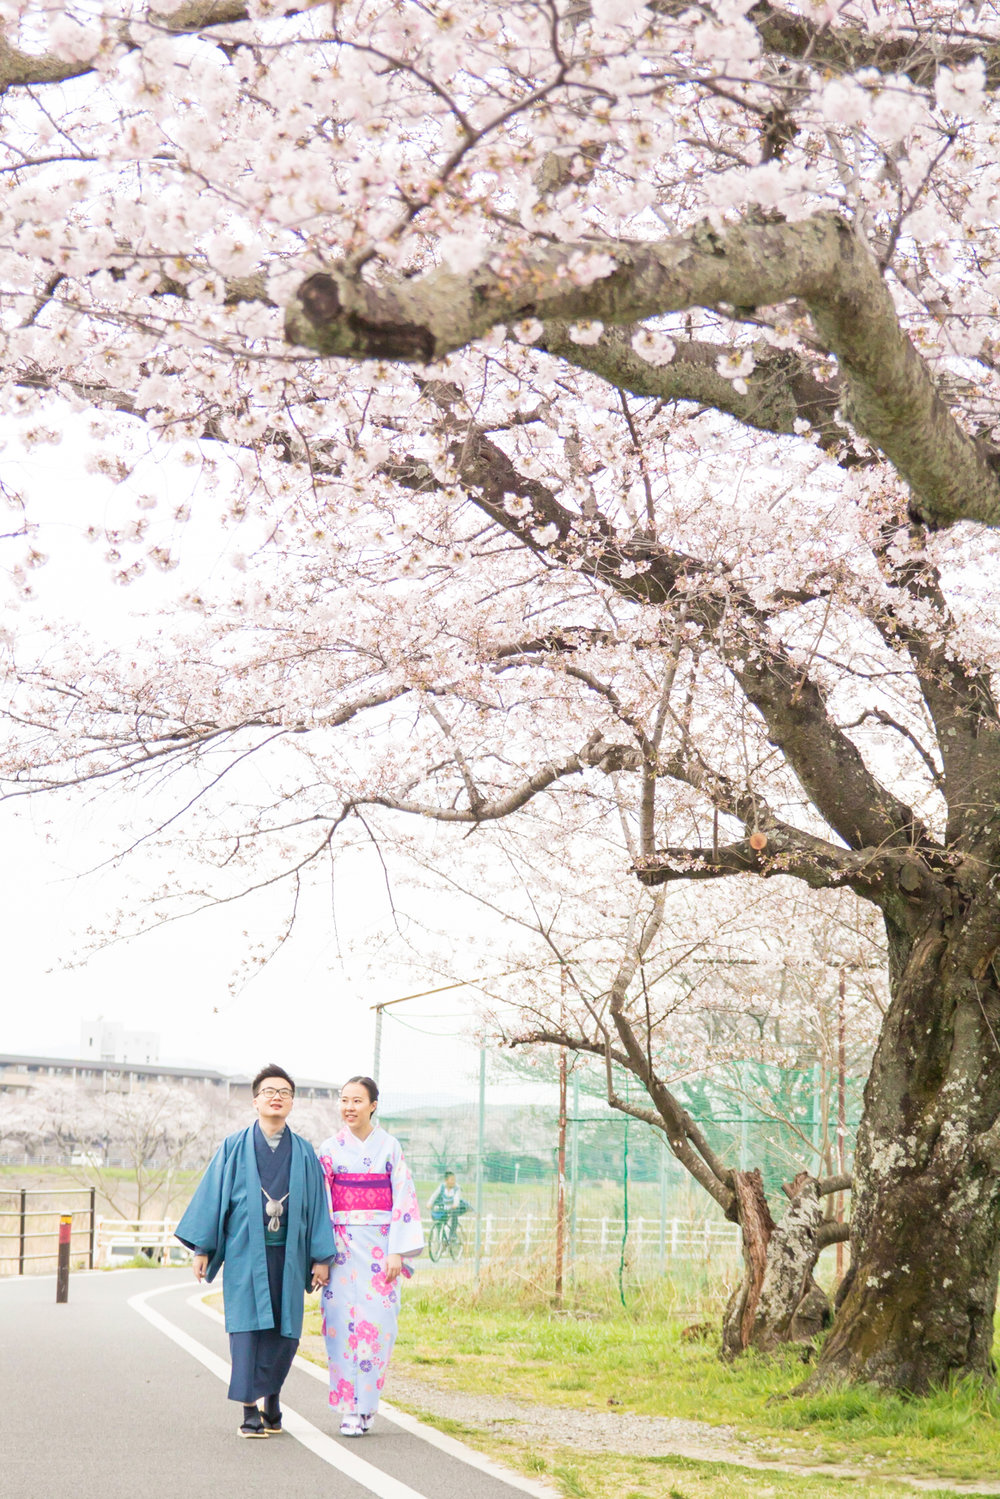 Photo tour with cherry blossoms in Kyoto 2017